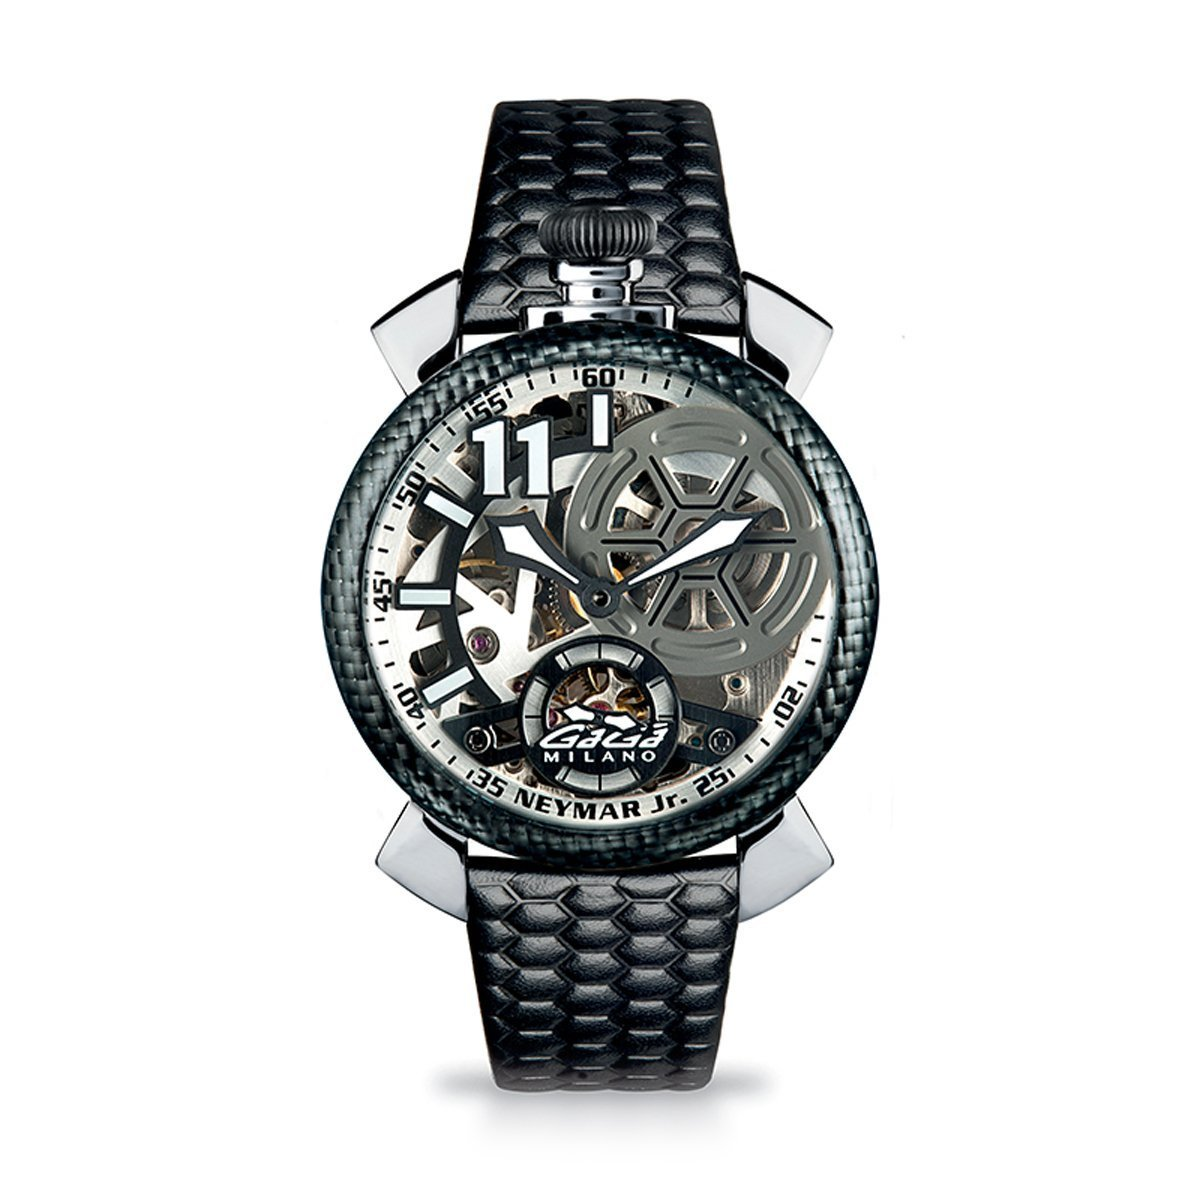 Gaga Milano Neymar Jr. Skeleton Steel Limited Edition - Watches & Crystals